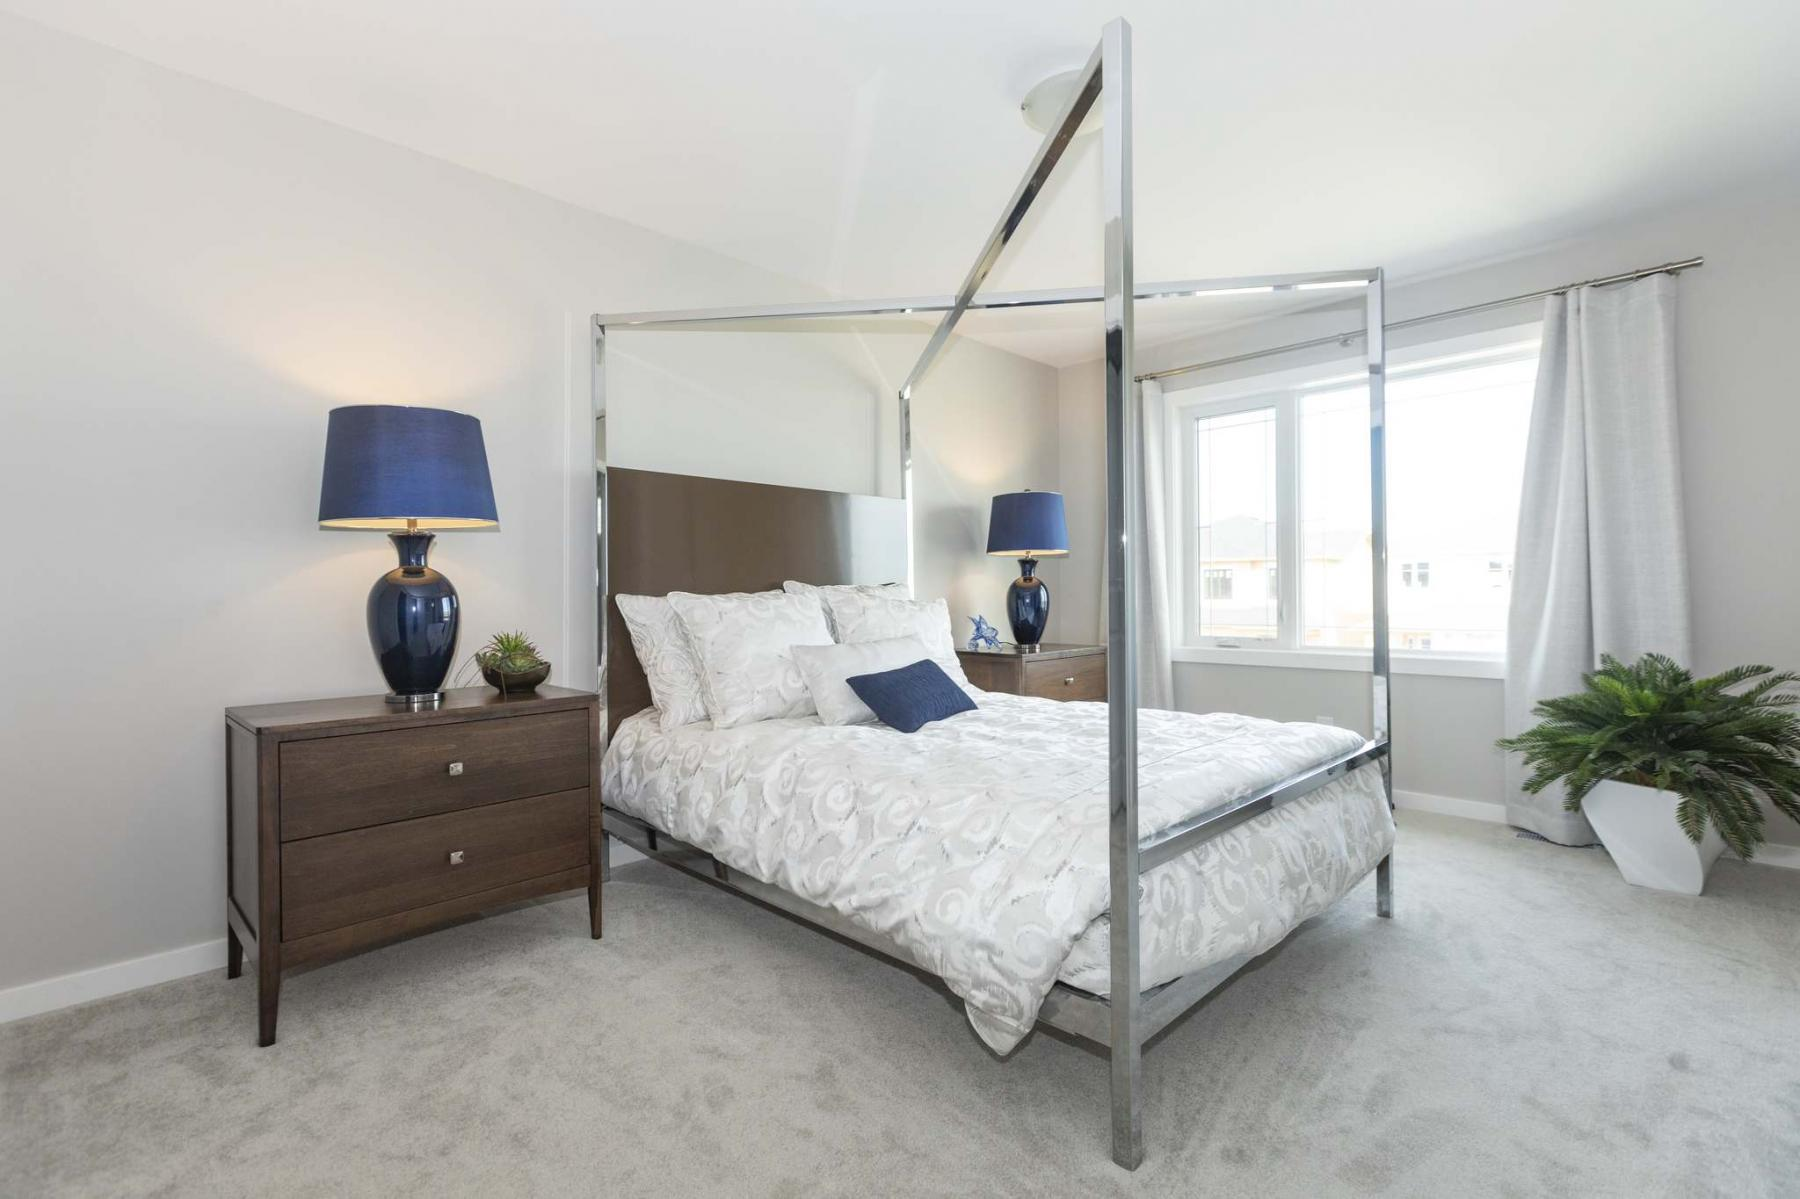 <p>SASHA SEFTER / WINNIPEG FREE PRESS</p><p>The spacious second floor master bedroom lets in tons of natural light.</p>